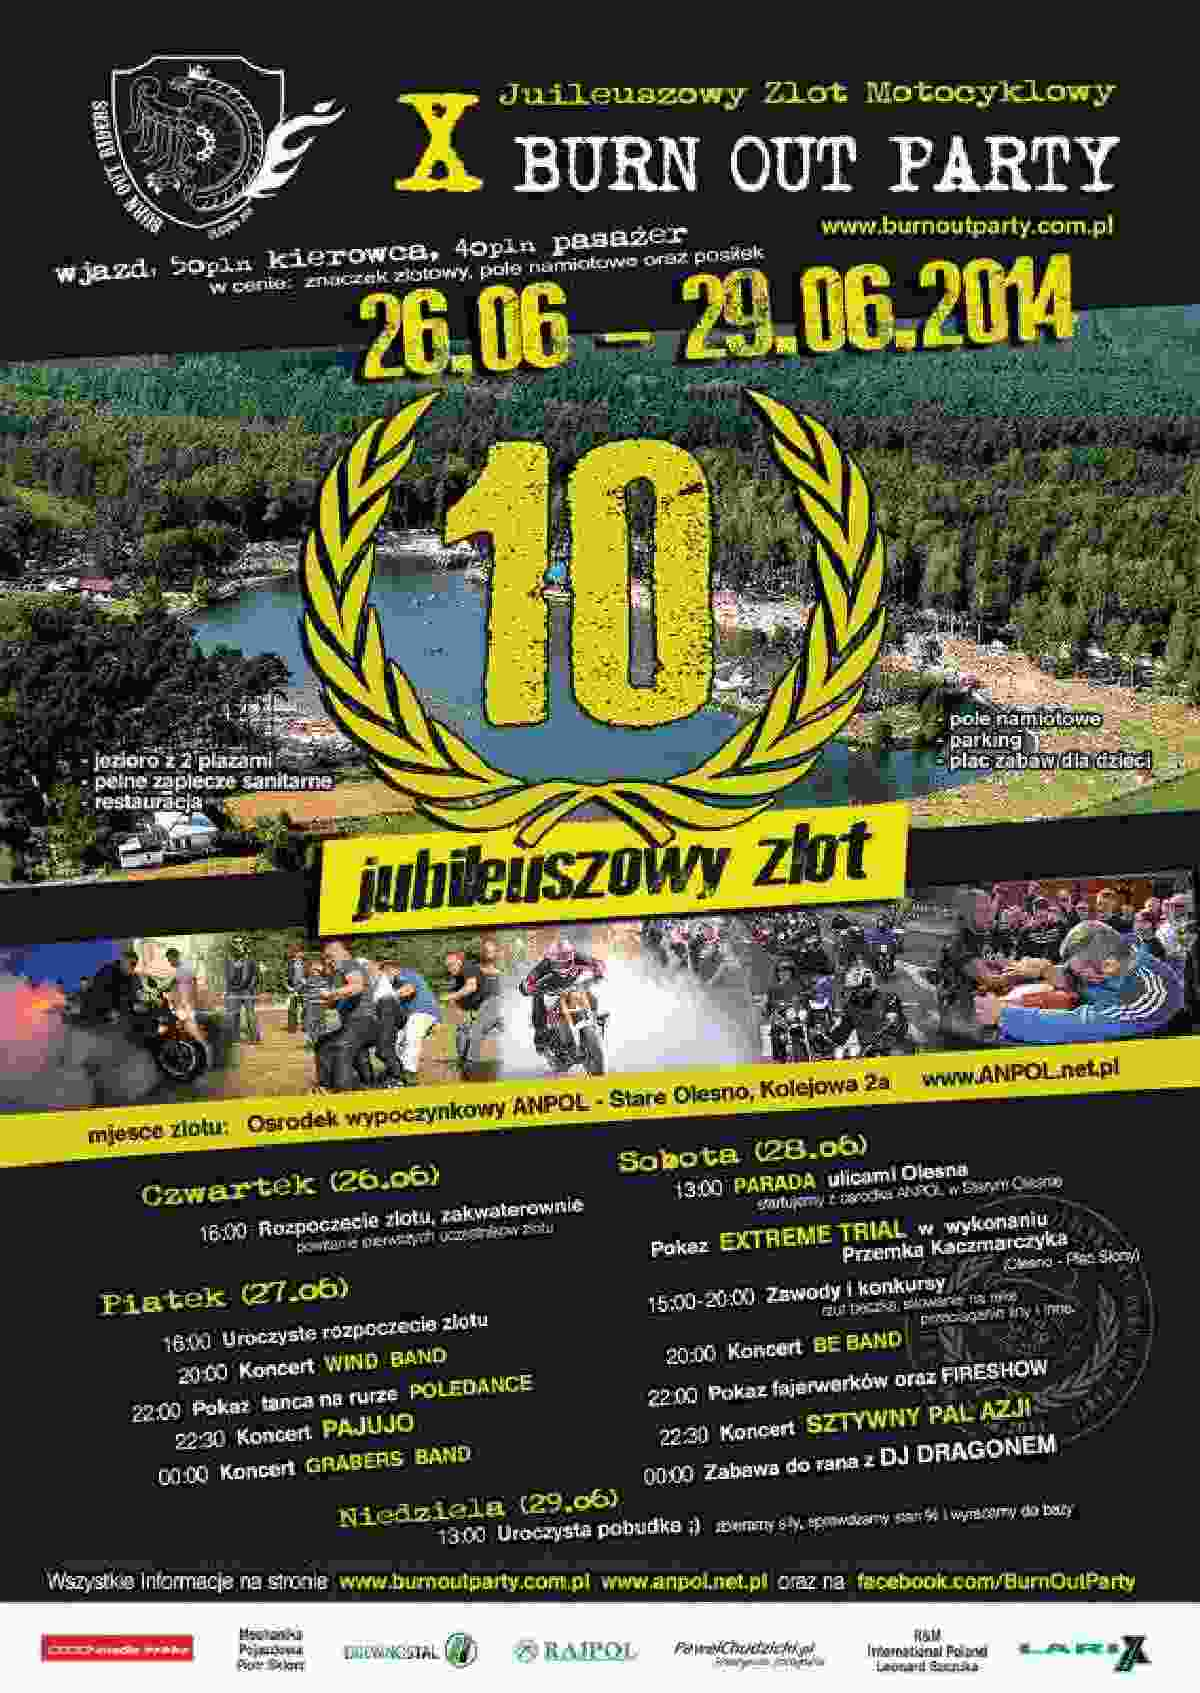 X Burn Out Party 26-29.06.2014 – Stare Olesno